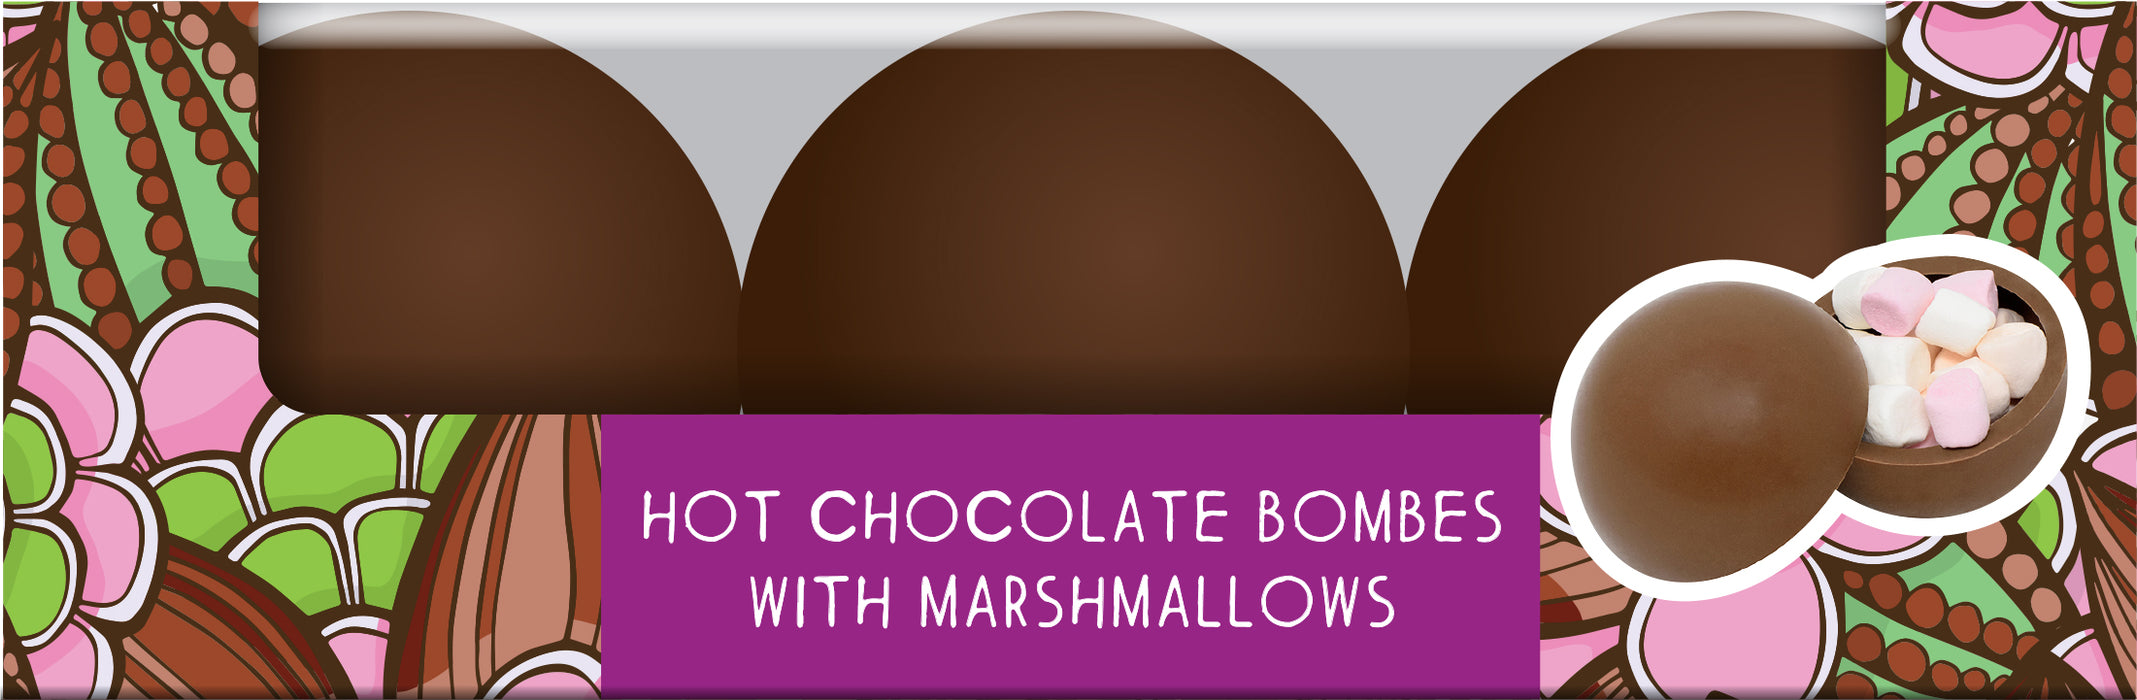 Hot Chocolate Bombe